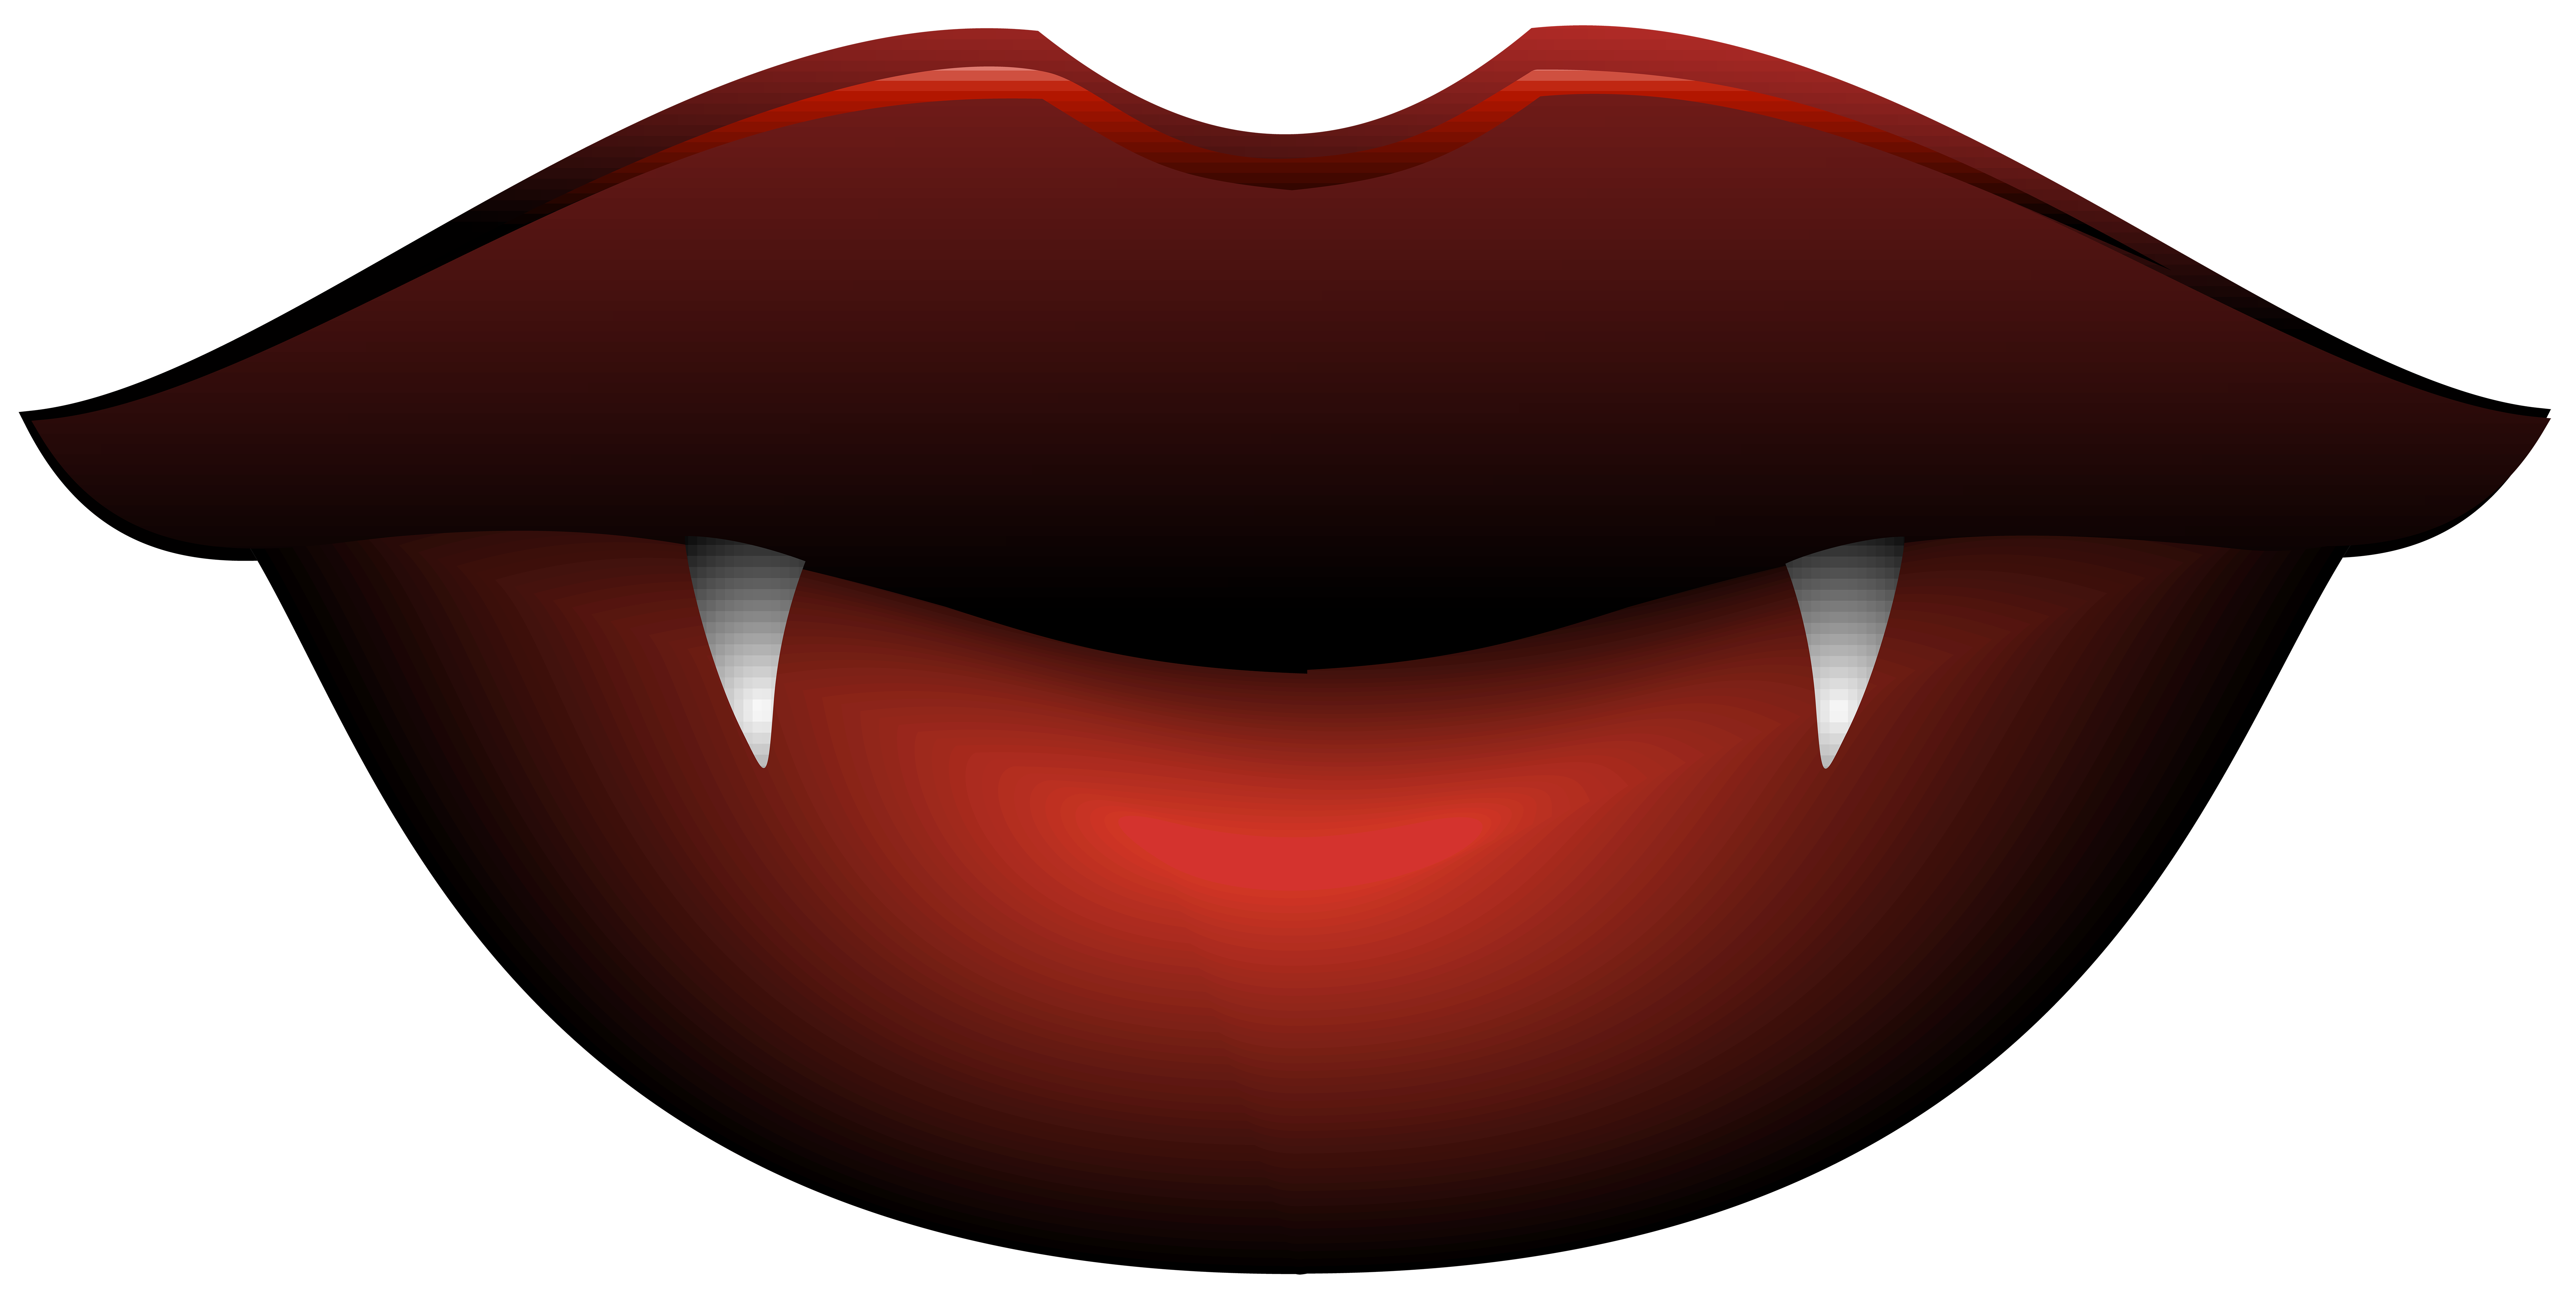 Vampire mouth clipart banner royalty free stock Vampire Lips Transparent PNG Clip Art Image | Gallery ... banner royalty free stock